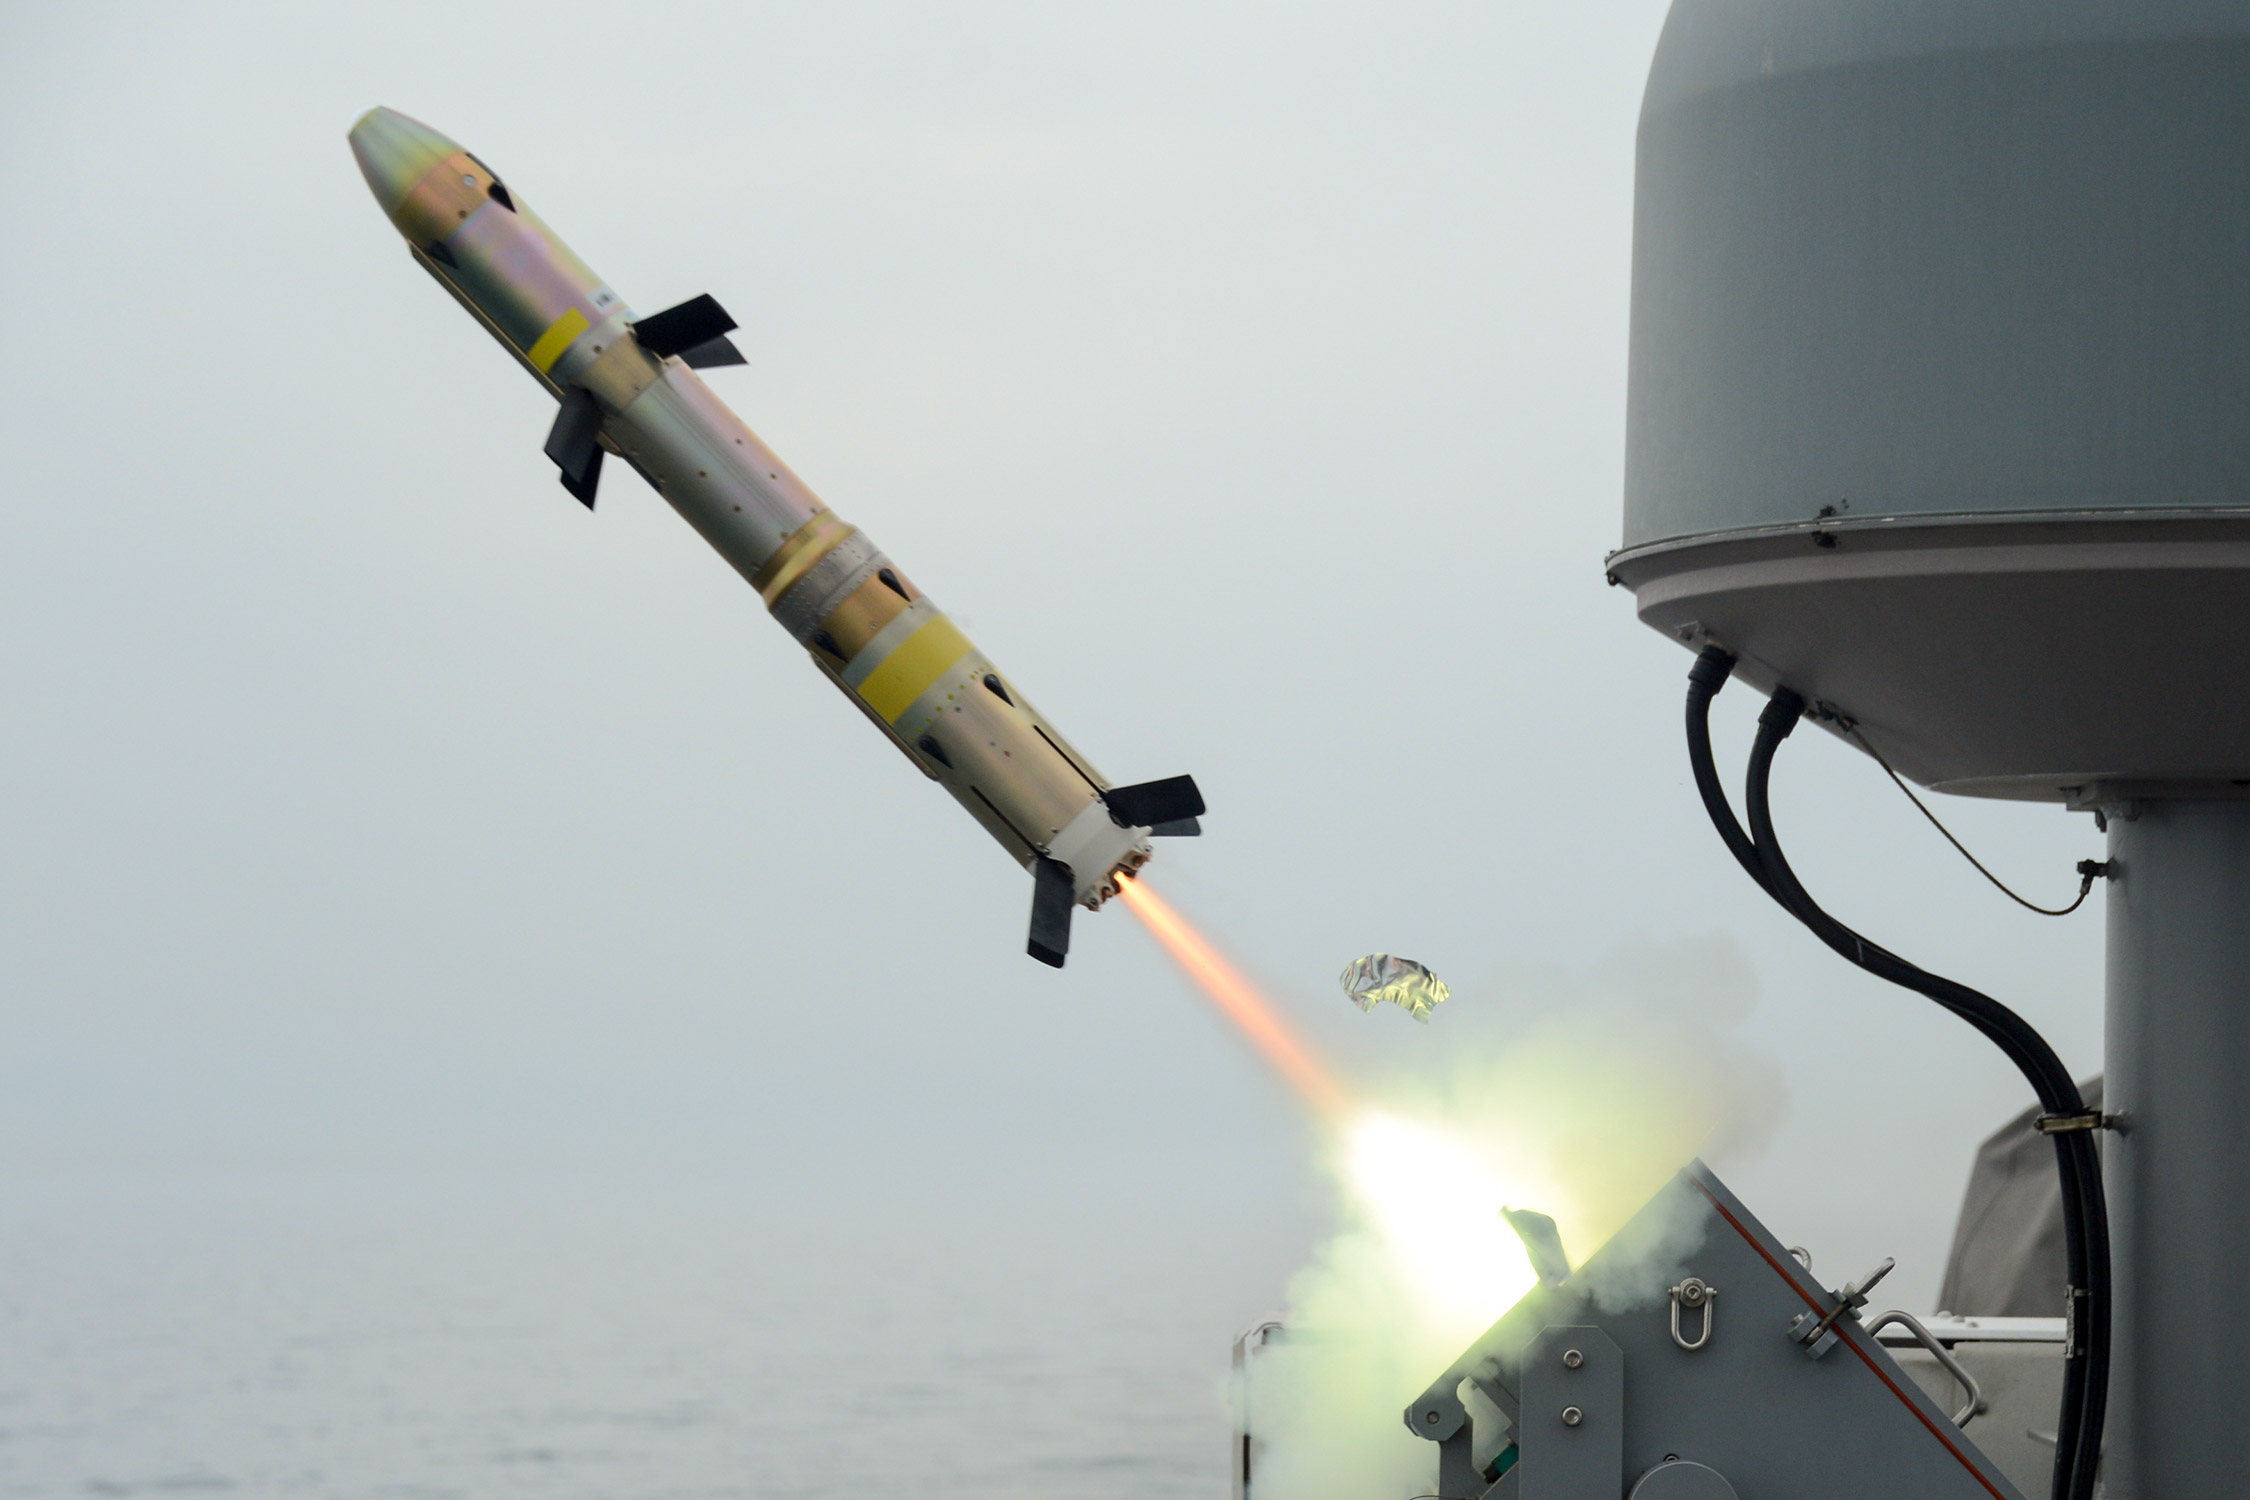 how to make a working model of missile